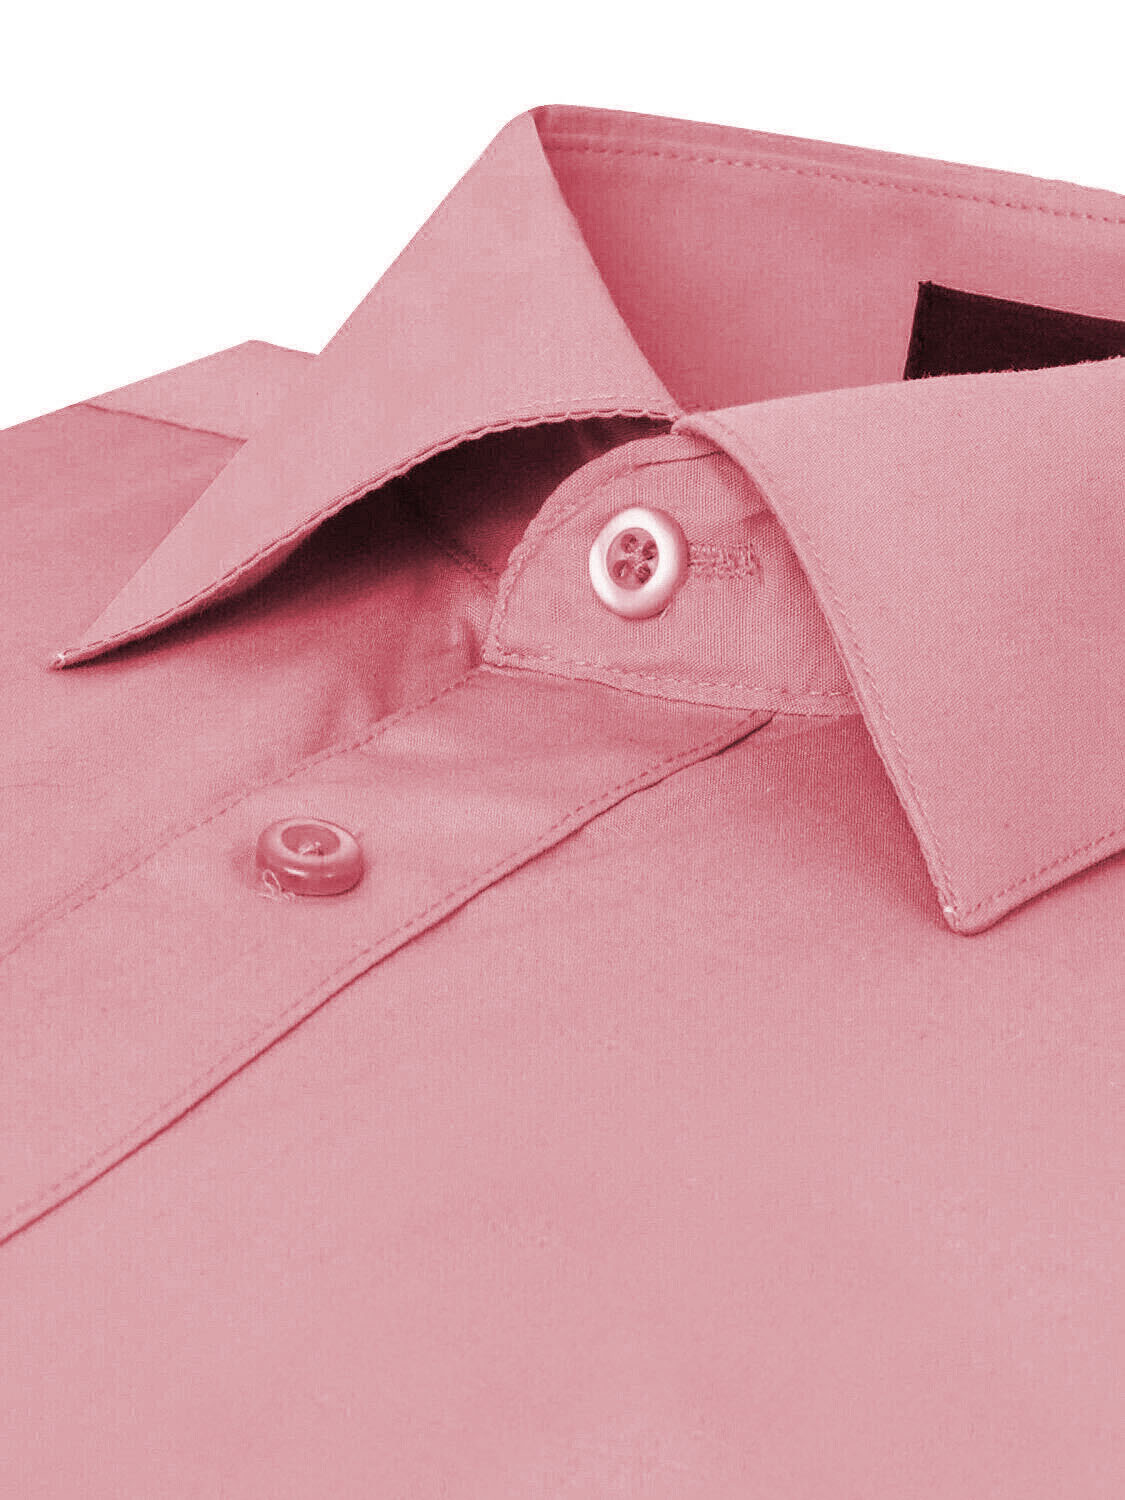 Omega-Italy-Men-039-s-Premium-Slim-Fit-Button-Up-Long-Sleeve-Solid-Color-Dress-Shirt thumbnail 80